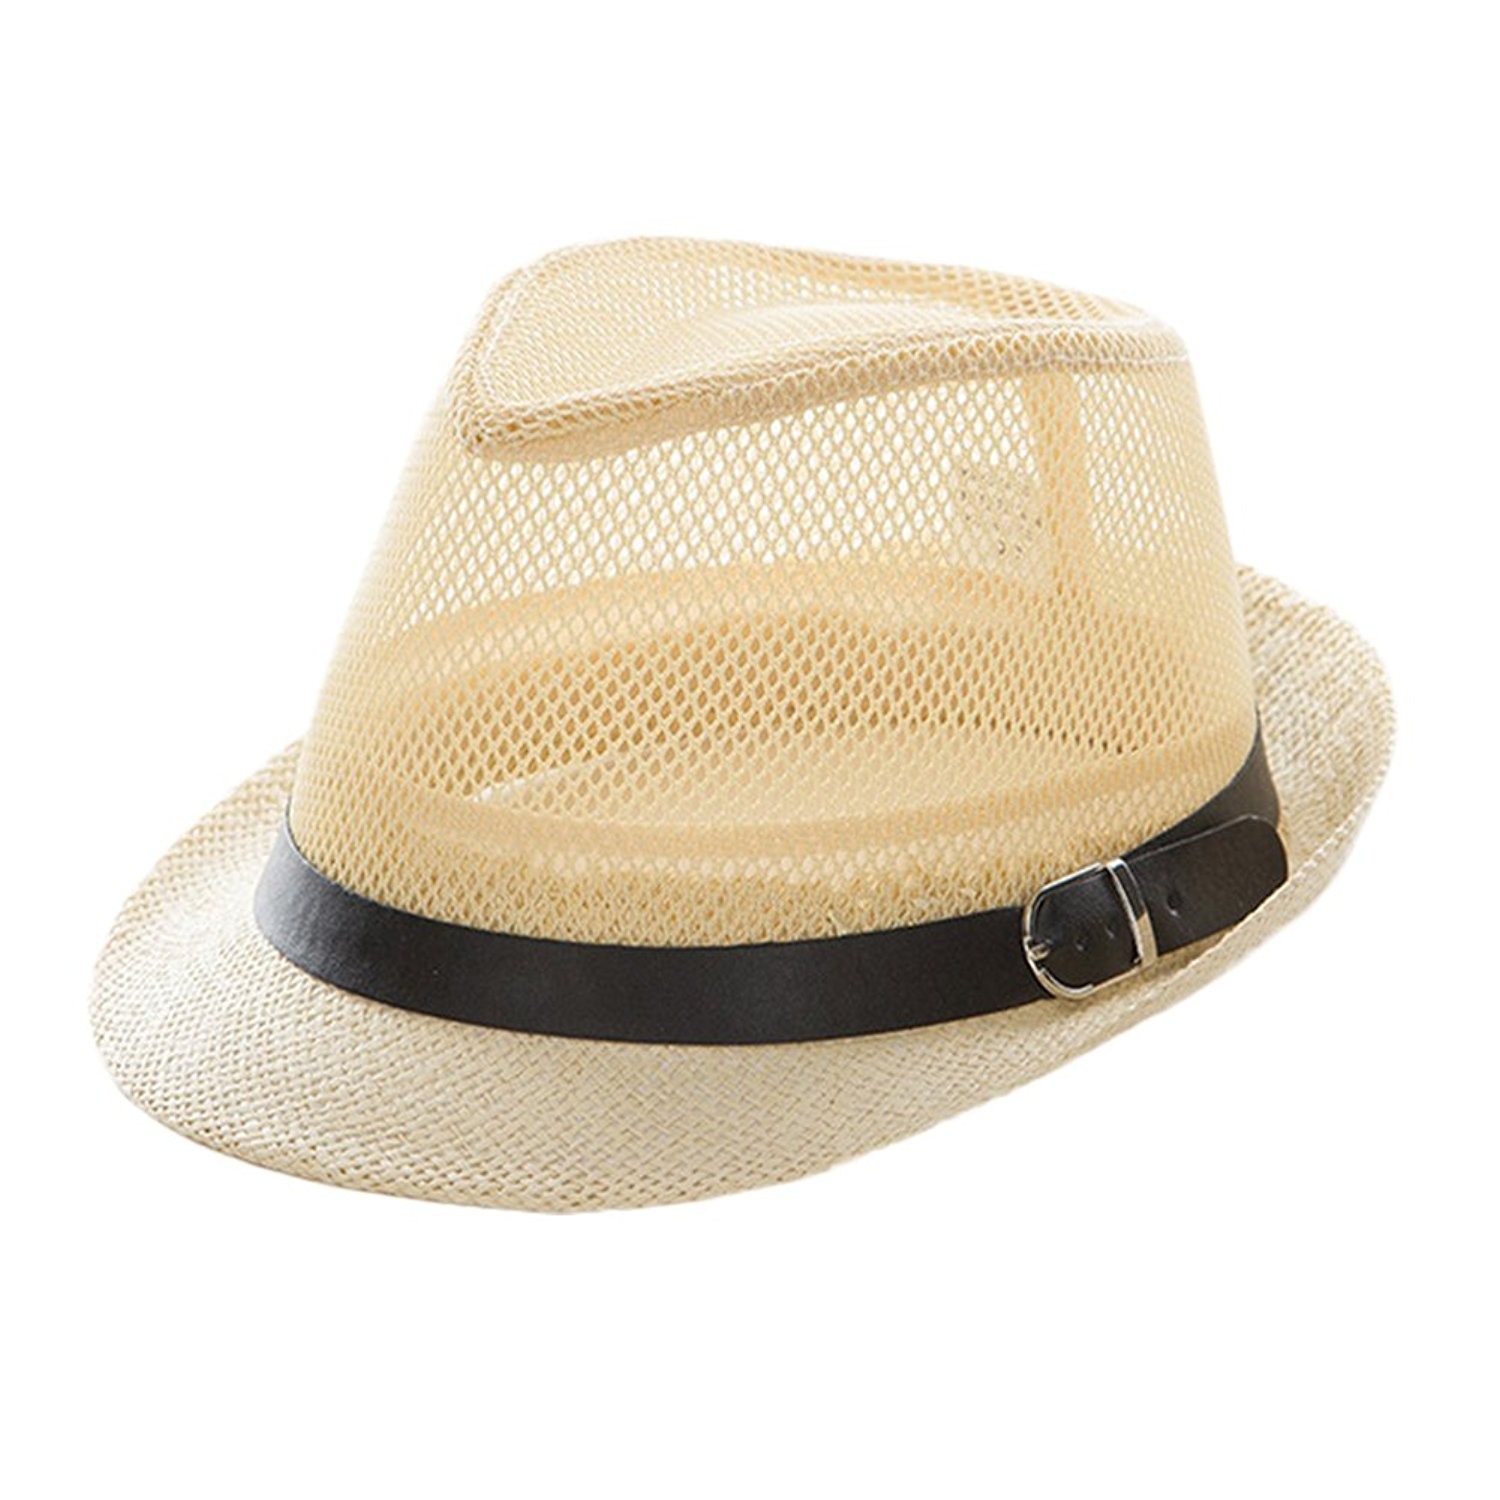 0b05a388 Get Quotations · 4URNEED Womens Mens Summer Hats Trilby Fedoras Hats Beach  Sun Hat Straw Panama Hat